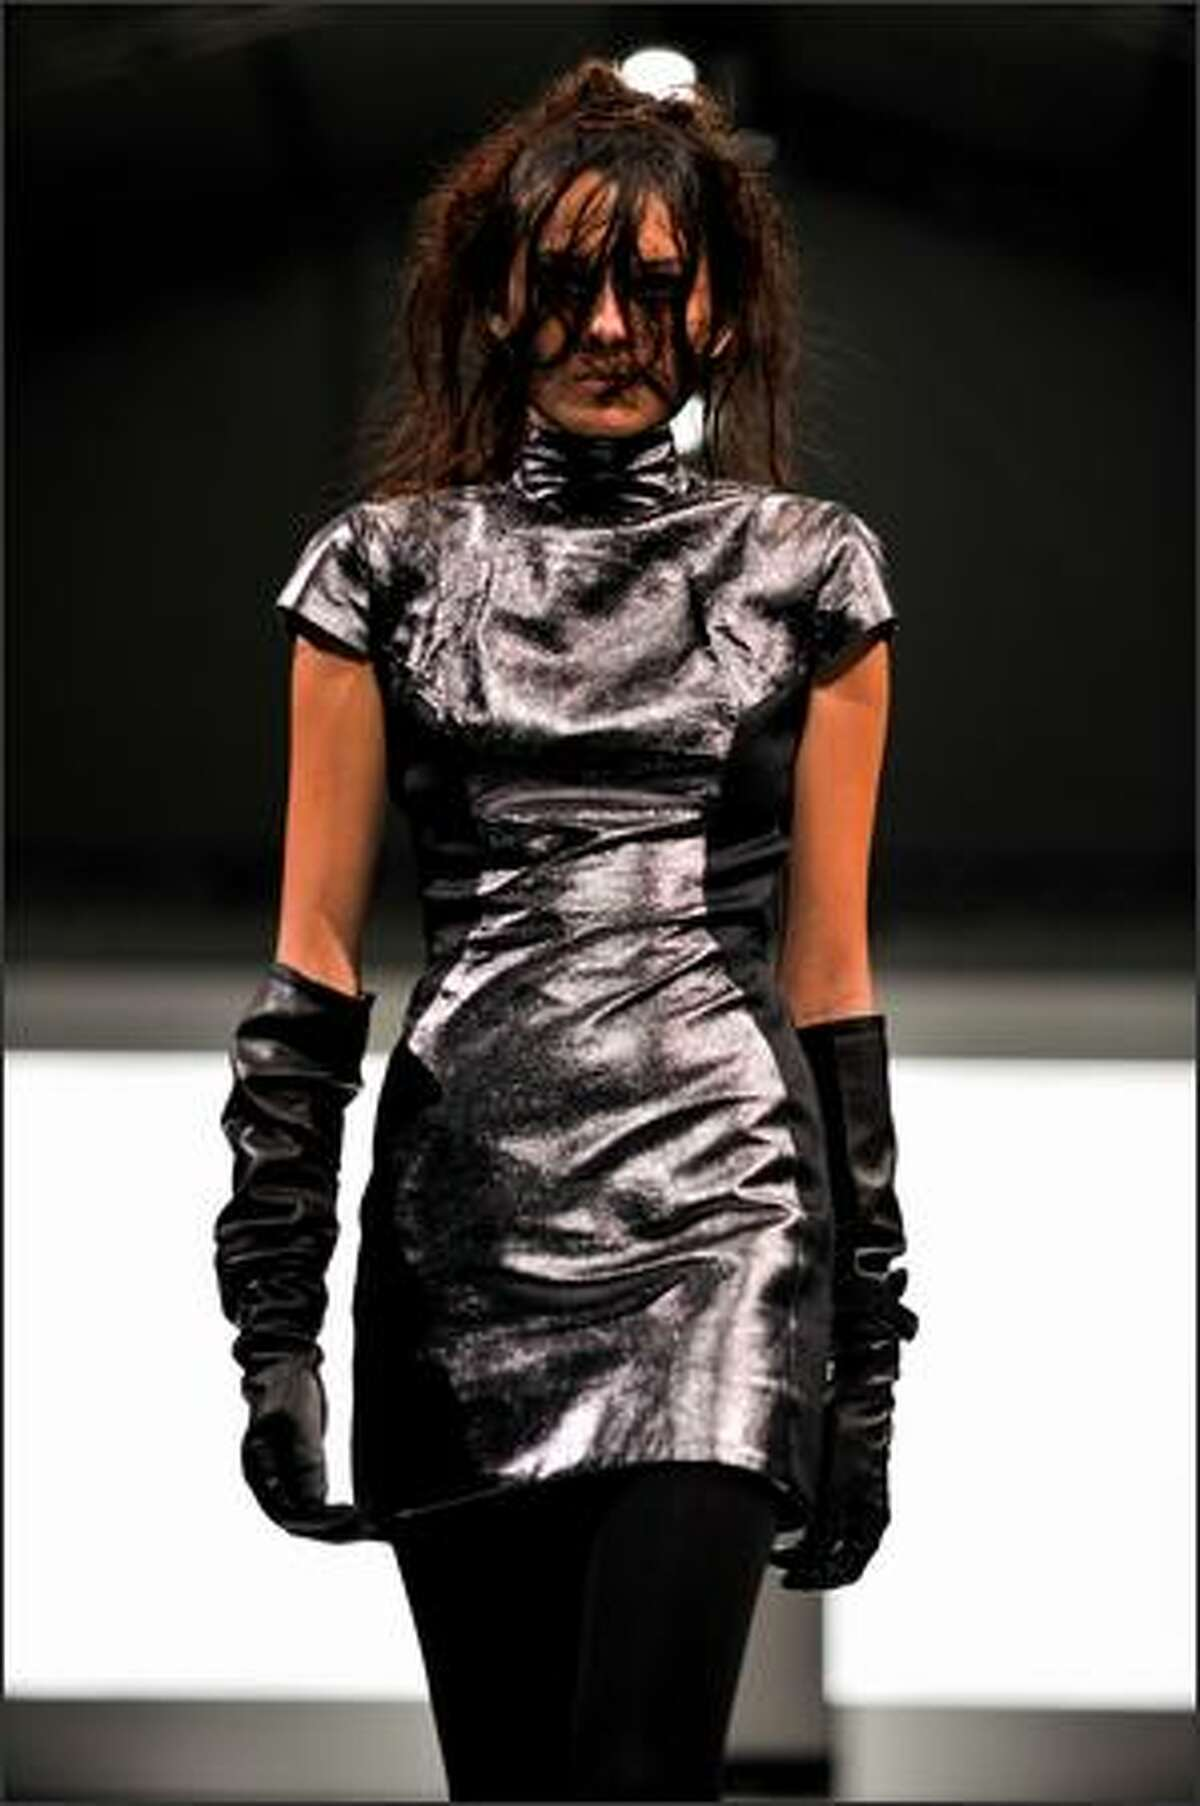 A model walks the runway wearing designs by Gareth Pugh on the closing catwalk at the Ngee Ann City Civic Plaza on day two of Audi Fashion Festival Singapore in Singapore on Thursday, May 7, 2009.